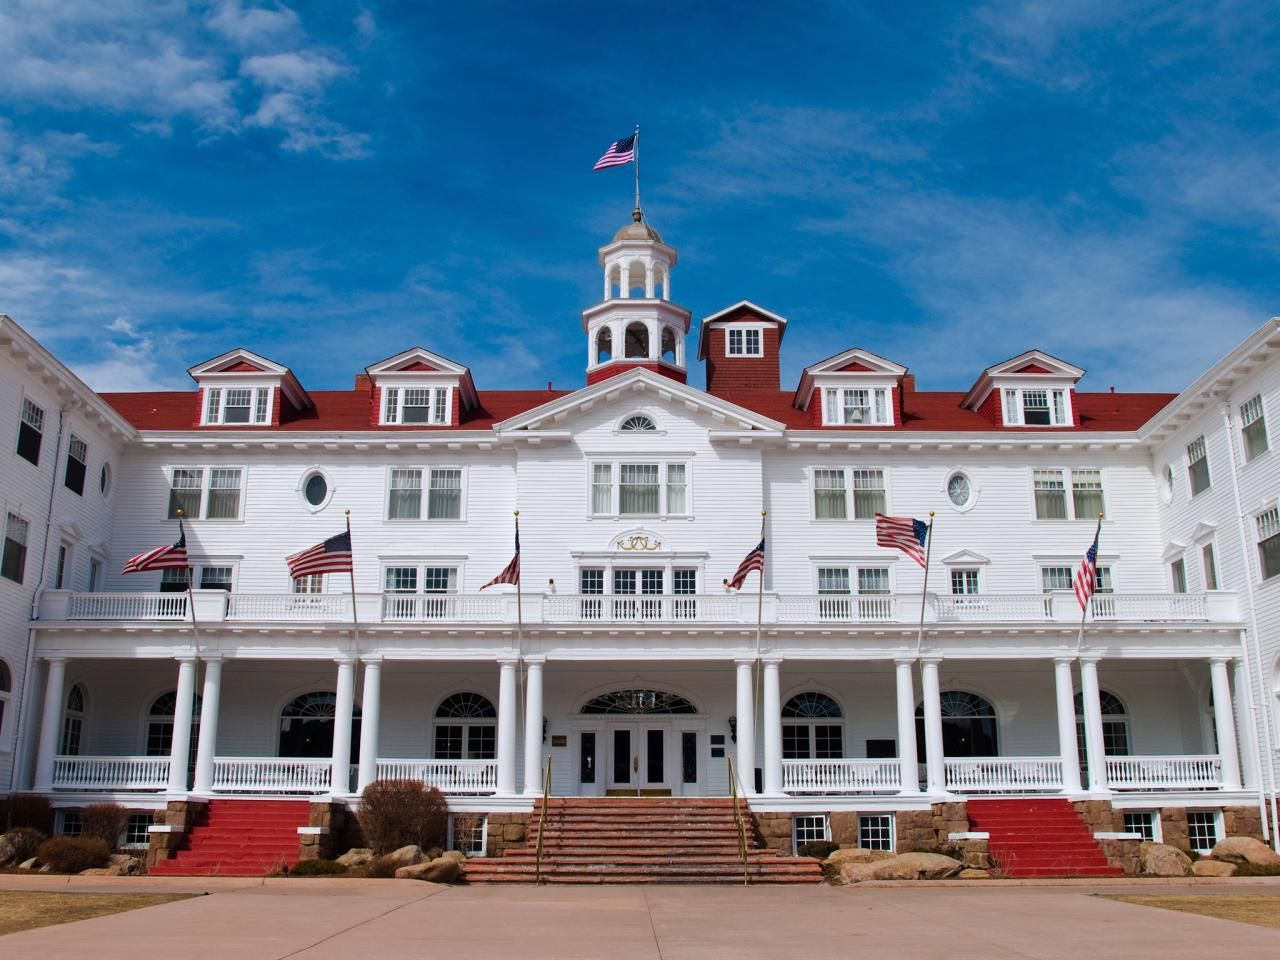 Colorado S Stanley Hotel Ed Horror Master Stephen King And Inspired The Setting For Shining